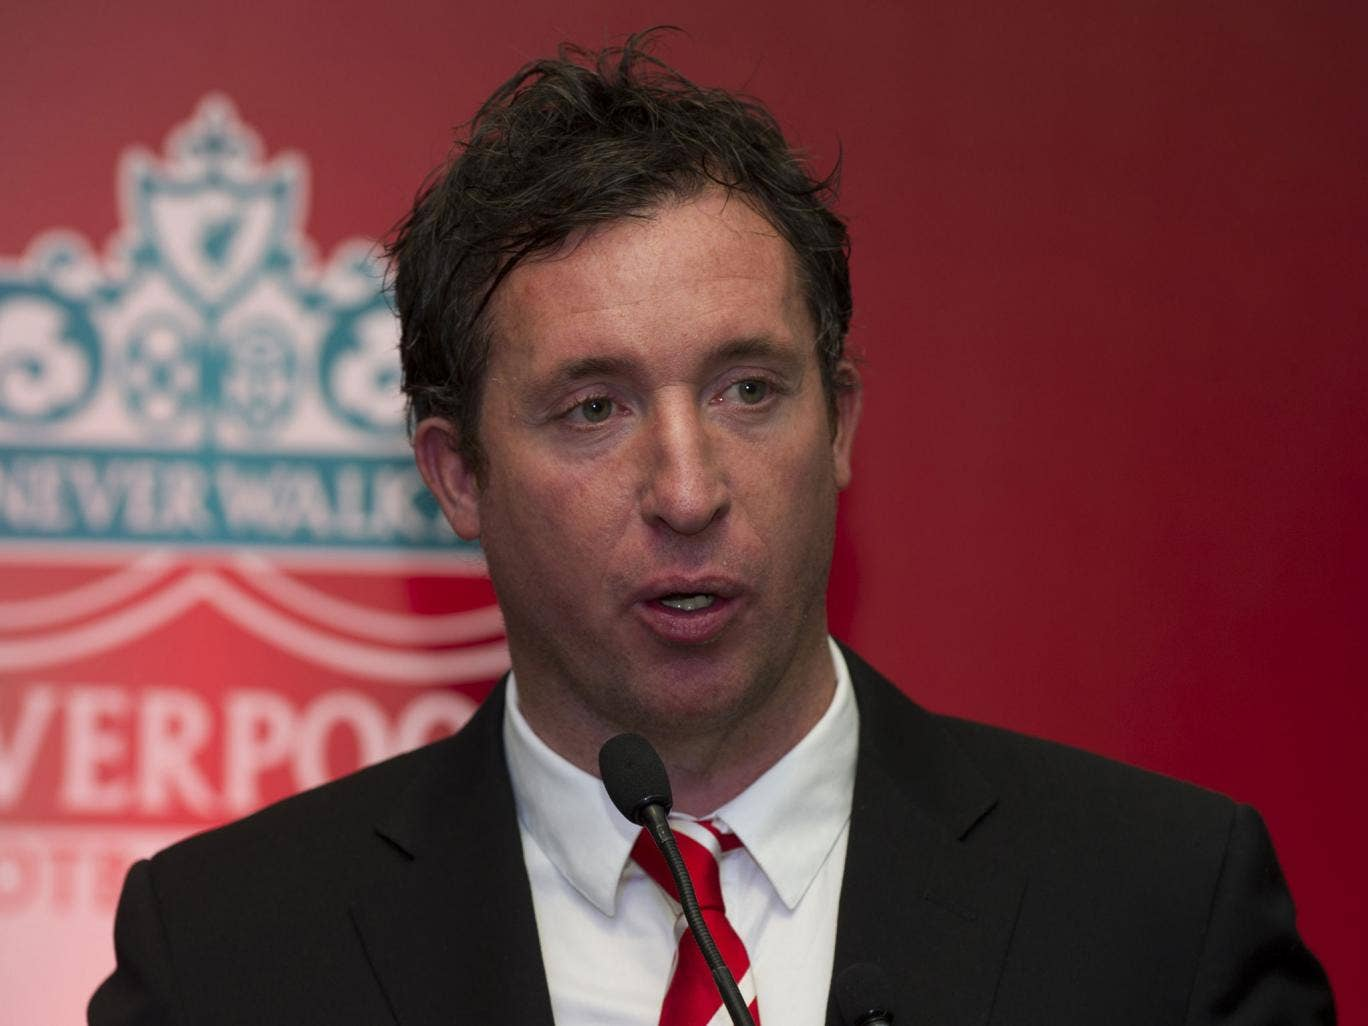 Former Liverpool Football Club and England striker Robbie Fowler speaks to media at an event in New Delhi on January 6, 2014.